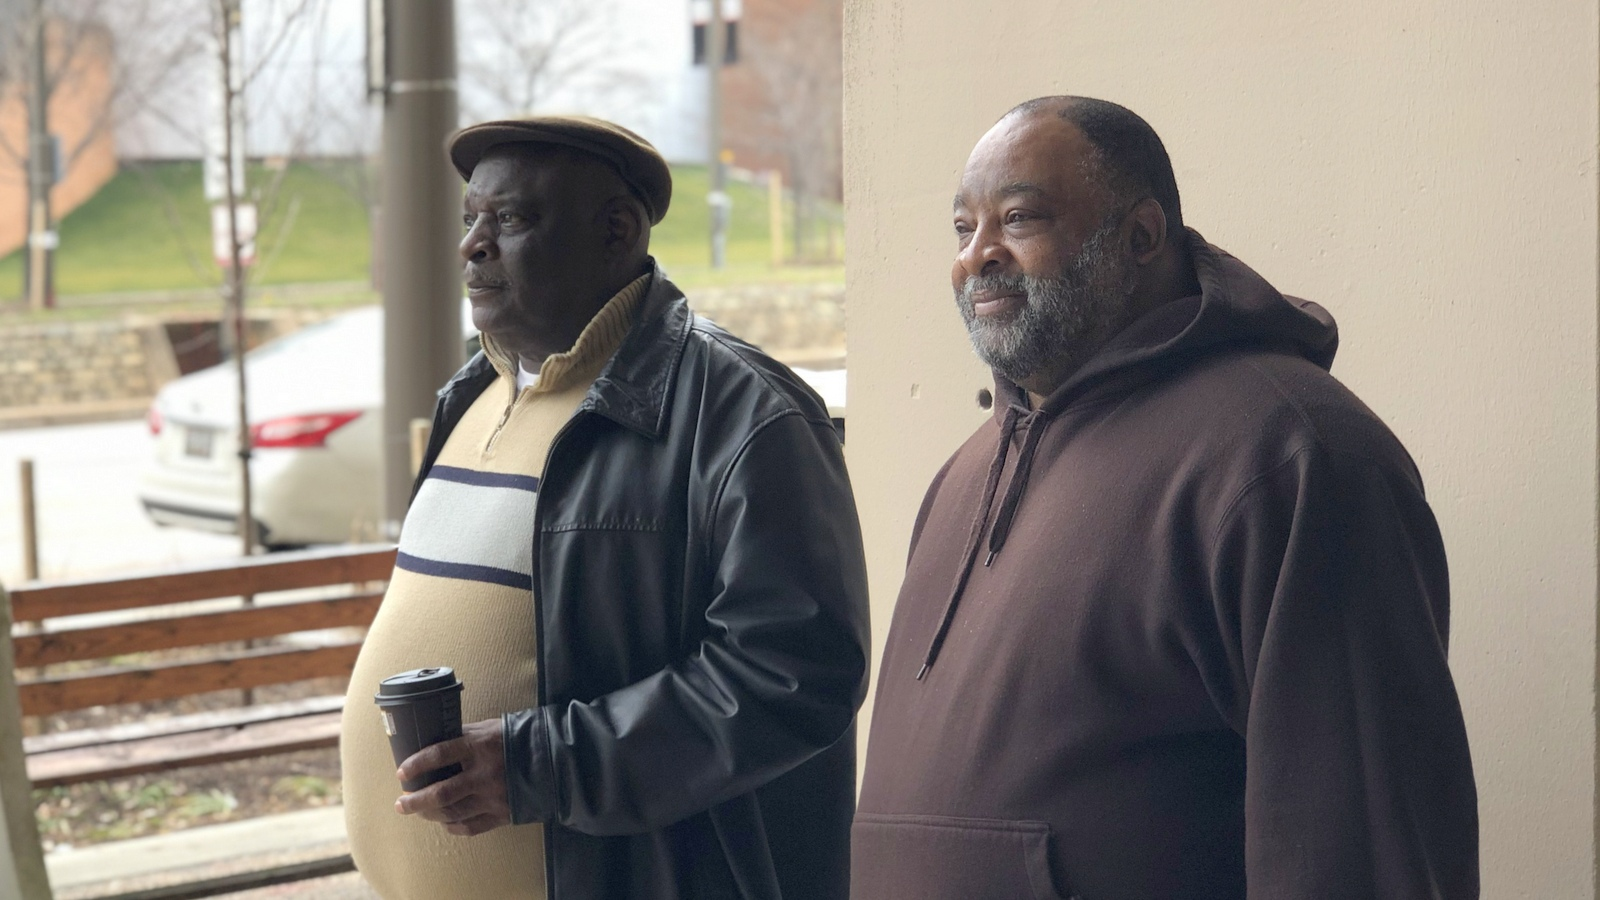 At a downtown Baltimore polling place, Alvin Jones and Donald Sketers offer bleak observations on the city. (Ian Round)